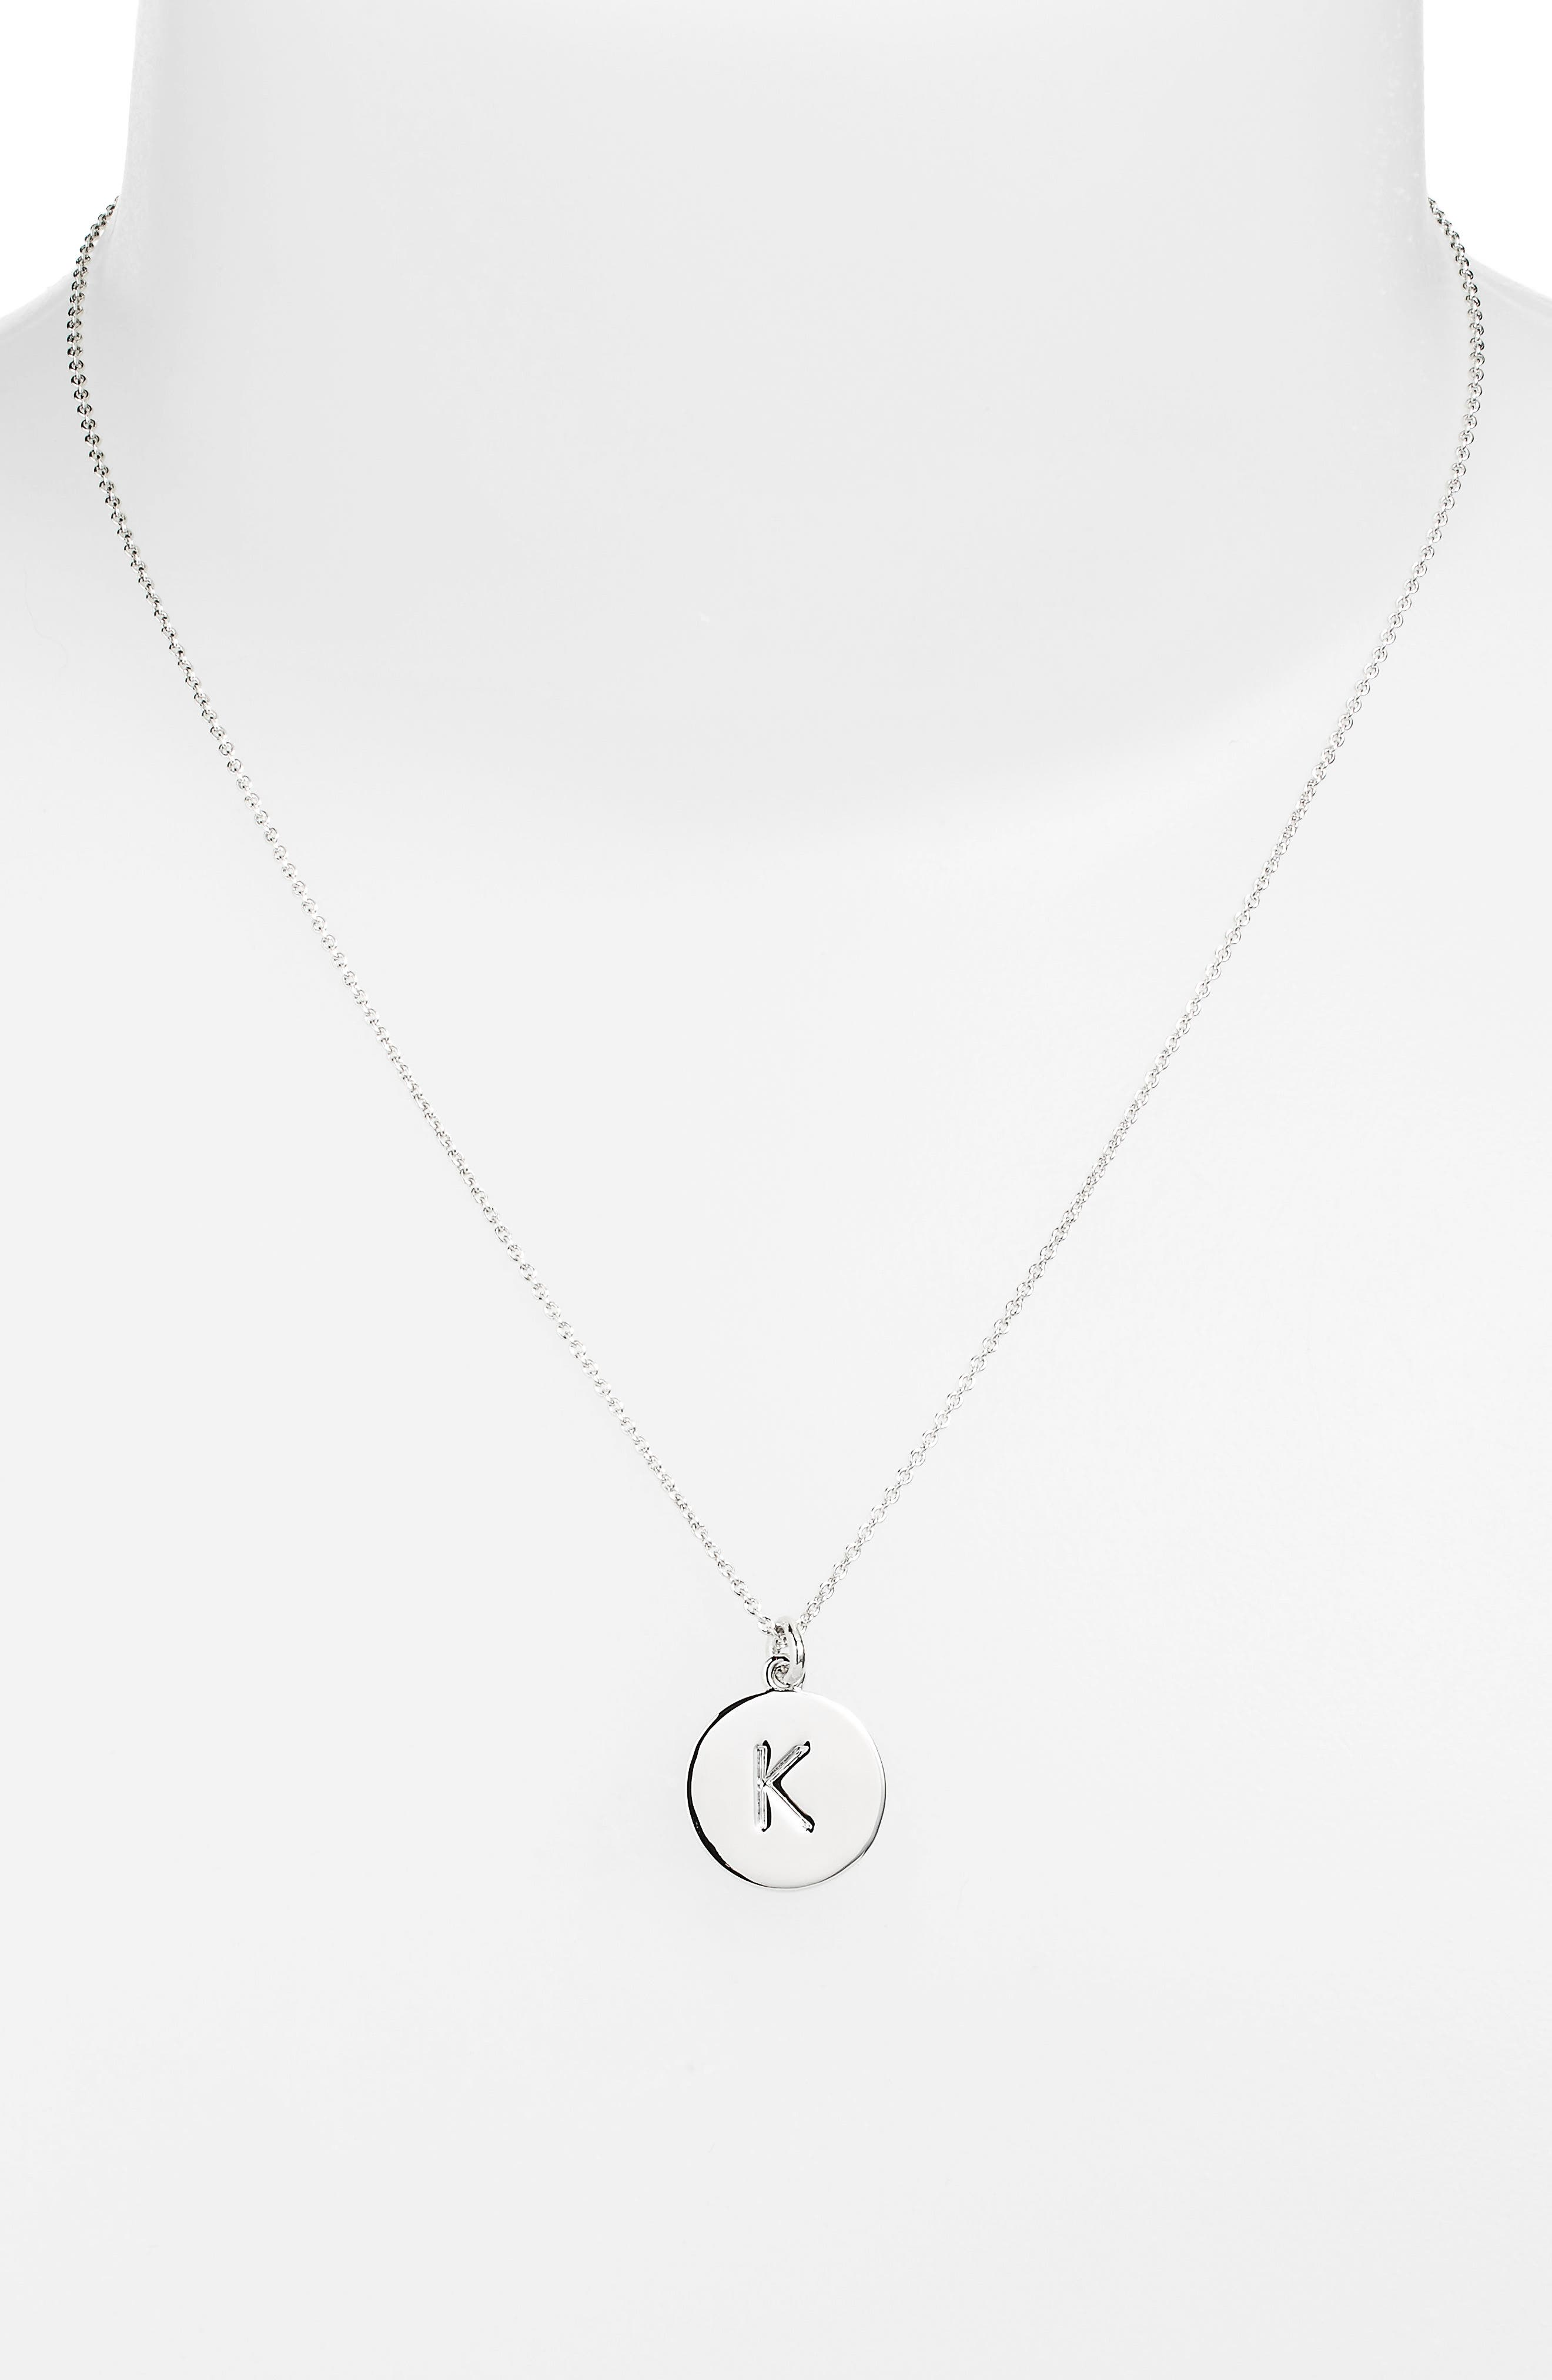 KATE SPADE NEW YORK 'one in a million' initial pendant necklace, Main, color, SILVER K